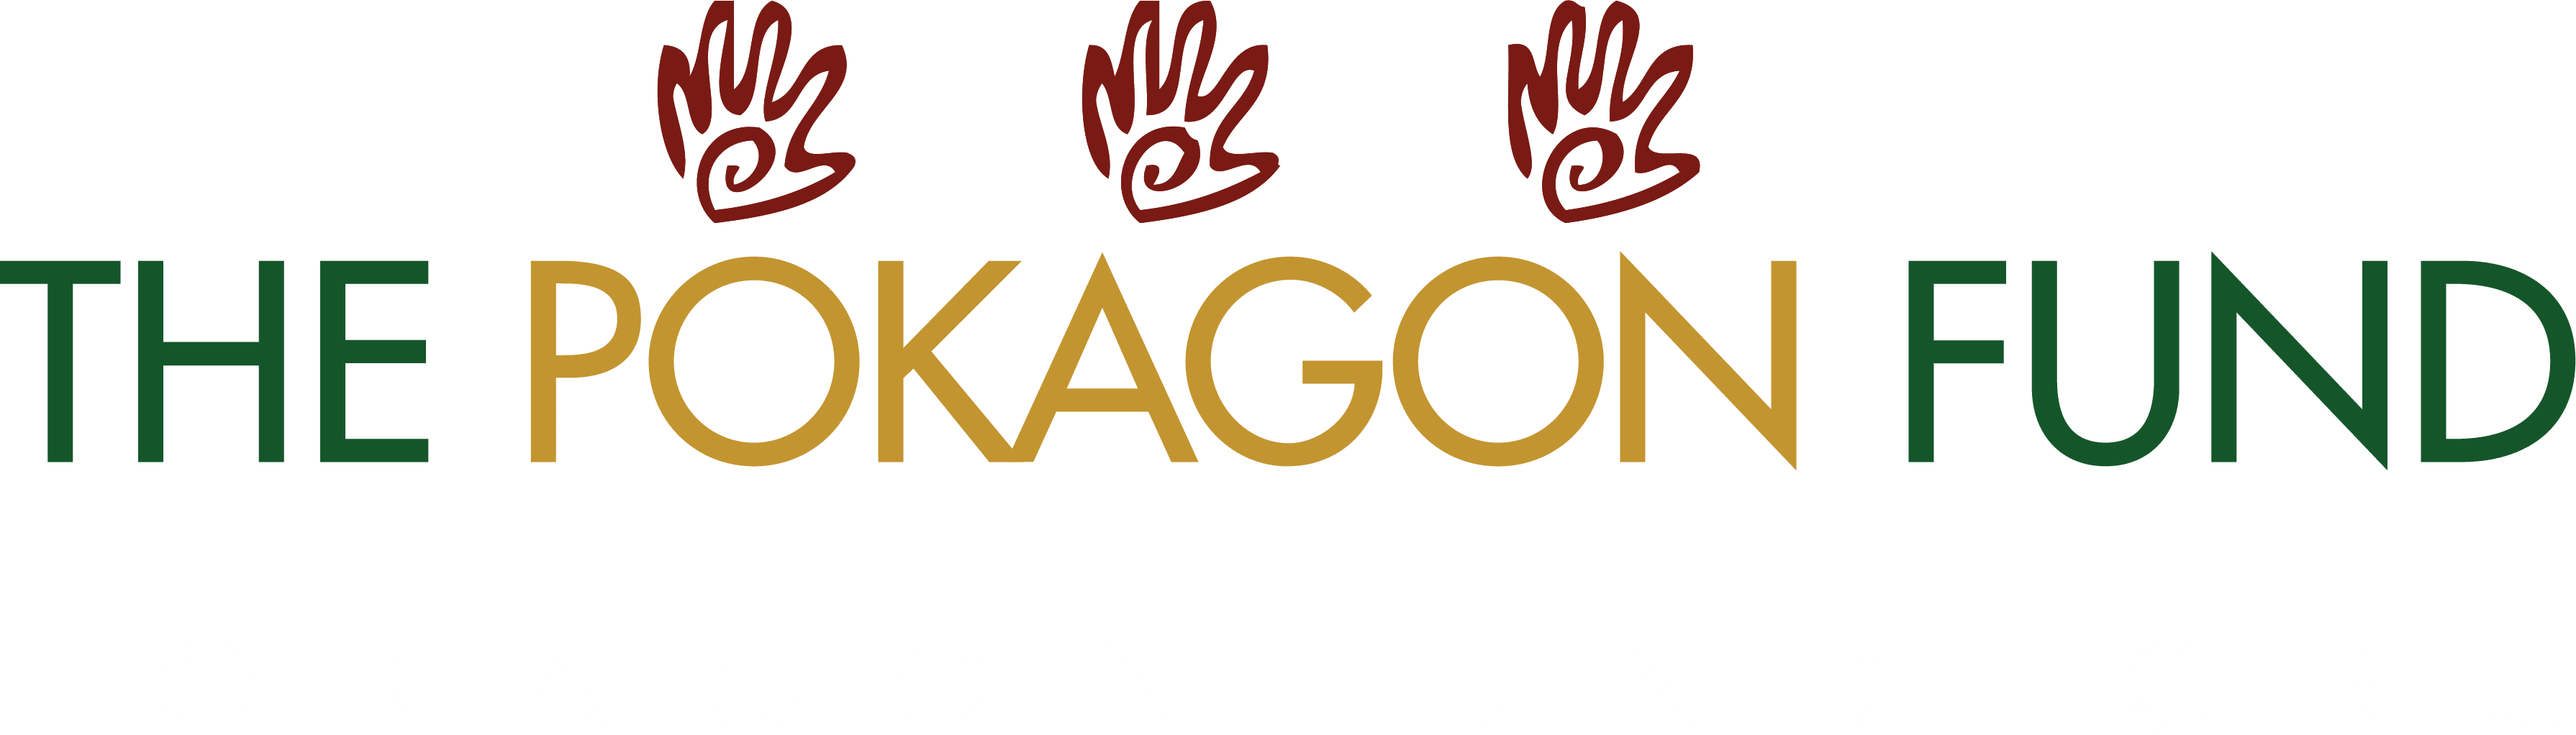 Pokagon Fund Logo